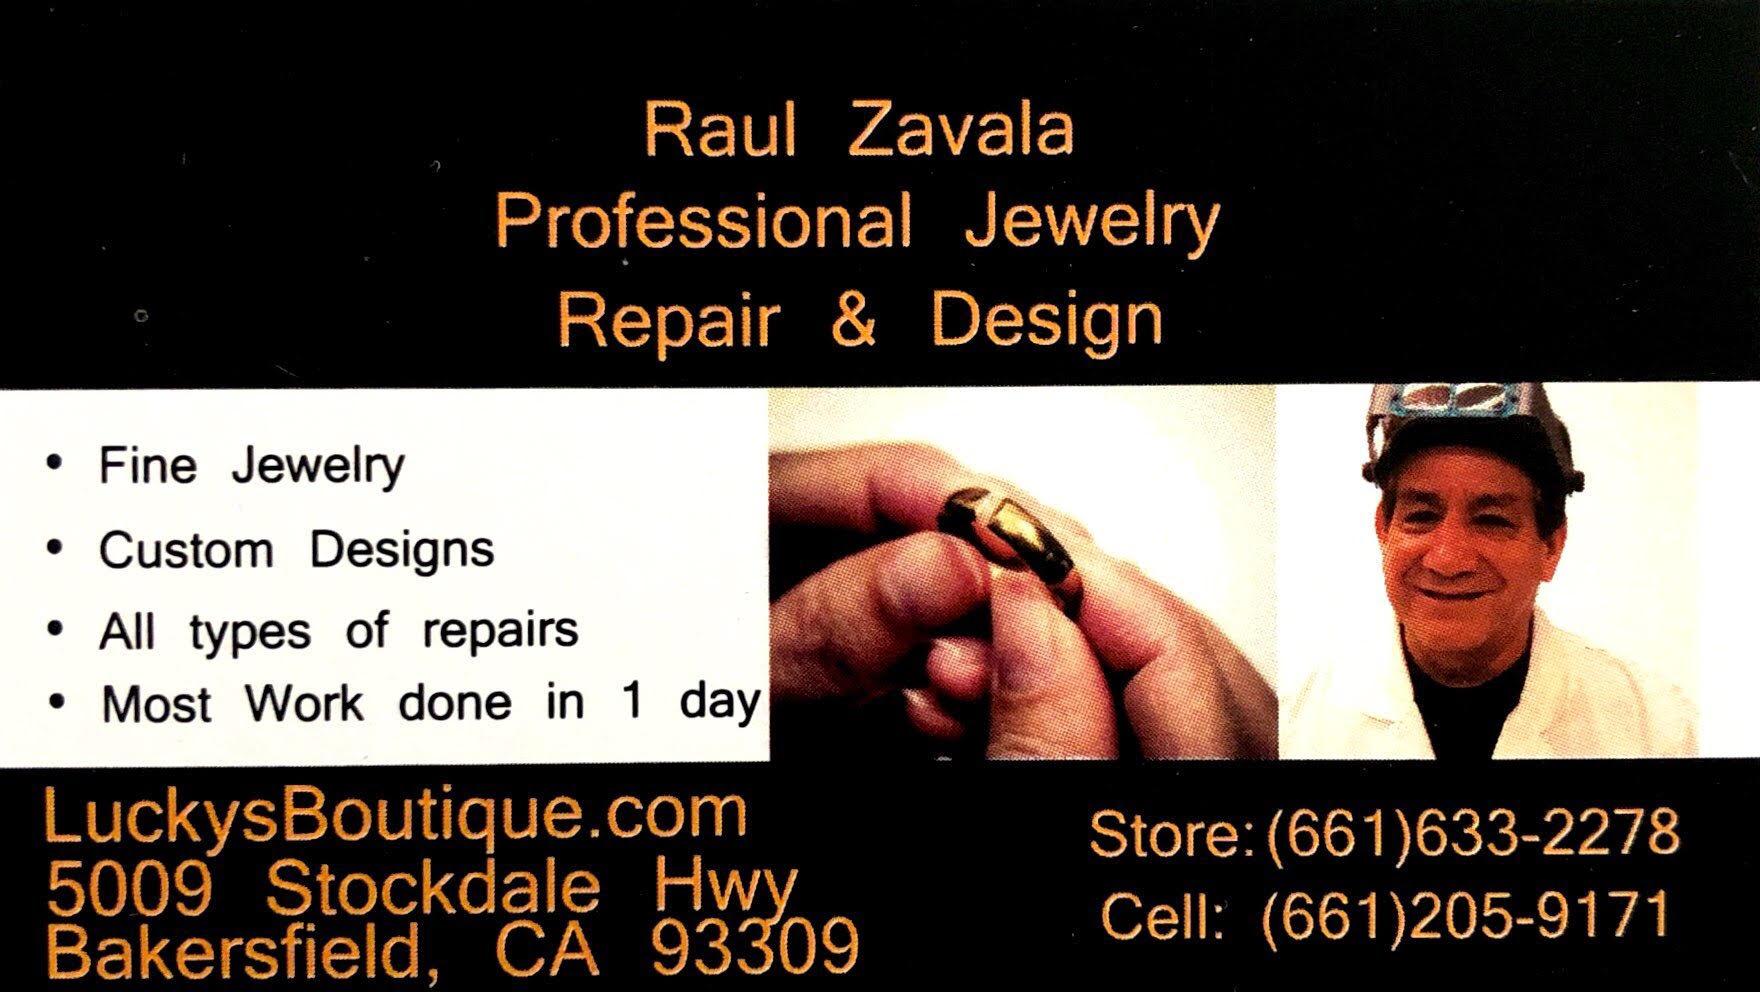 Raul Zavala Professional Jewelry Repair